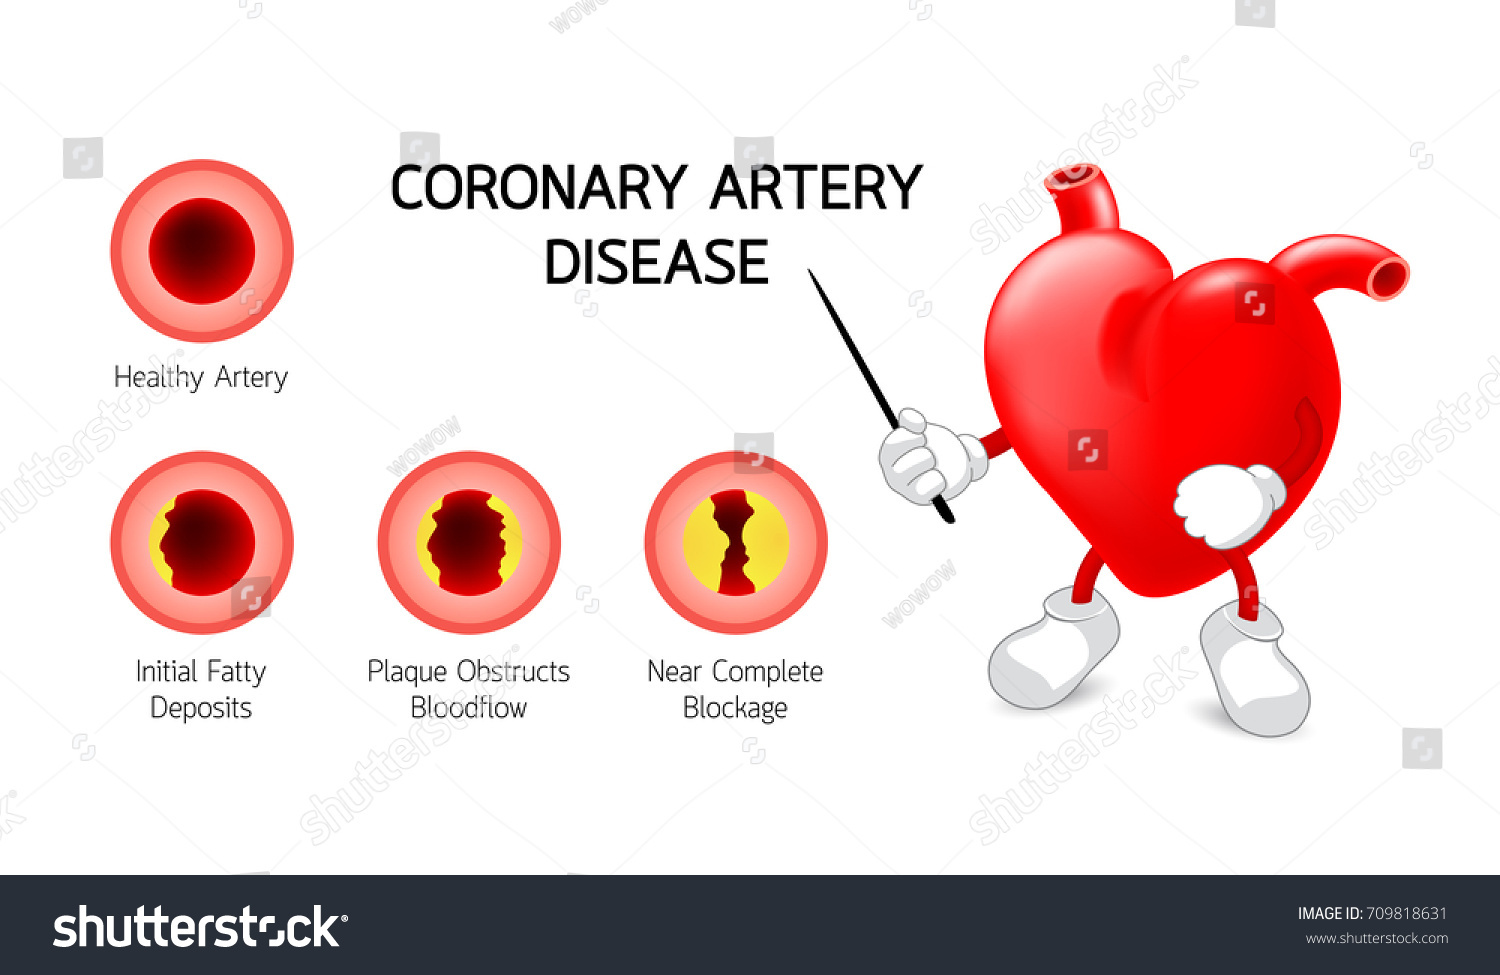 Coronary artery disease diagram free download wiring diagram heart character coronary artery disease info stock vector heart character with coronary artery disease info graphic heart awareness concept atherosclerosis pooptronica Images